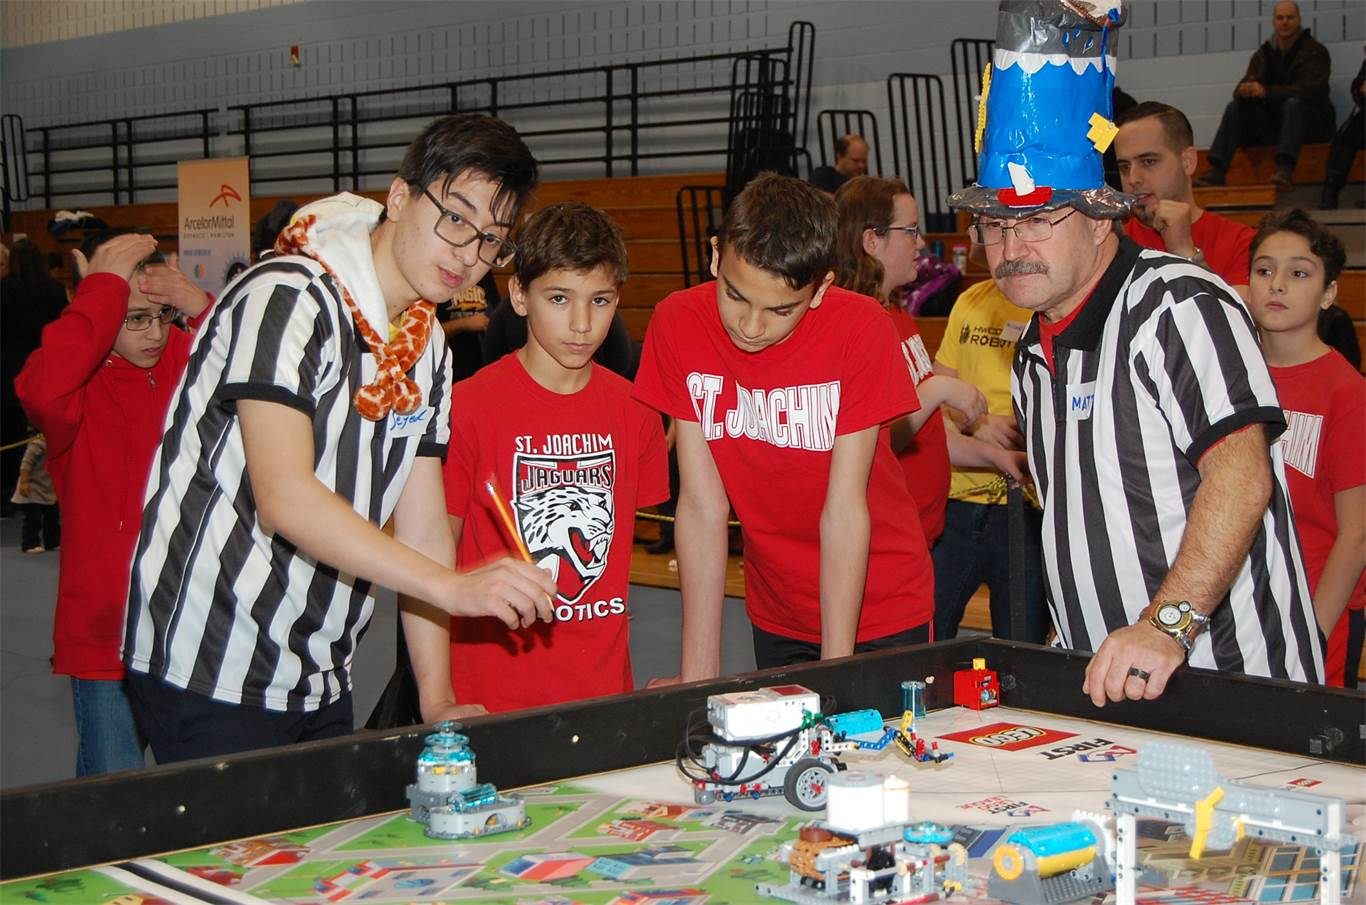 Referees review scores with members of the St. Joachim Jaguars at the FIRST LEGO League Hamilton Regional Qualifier on Dec. 9.